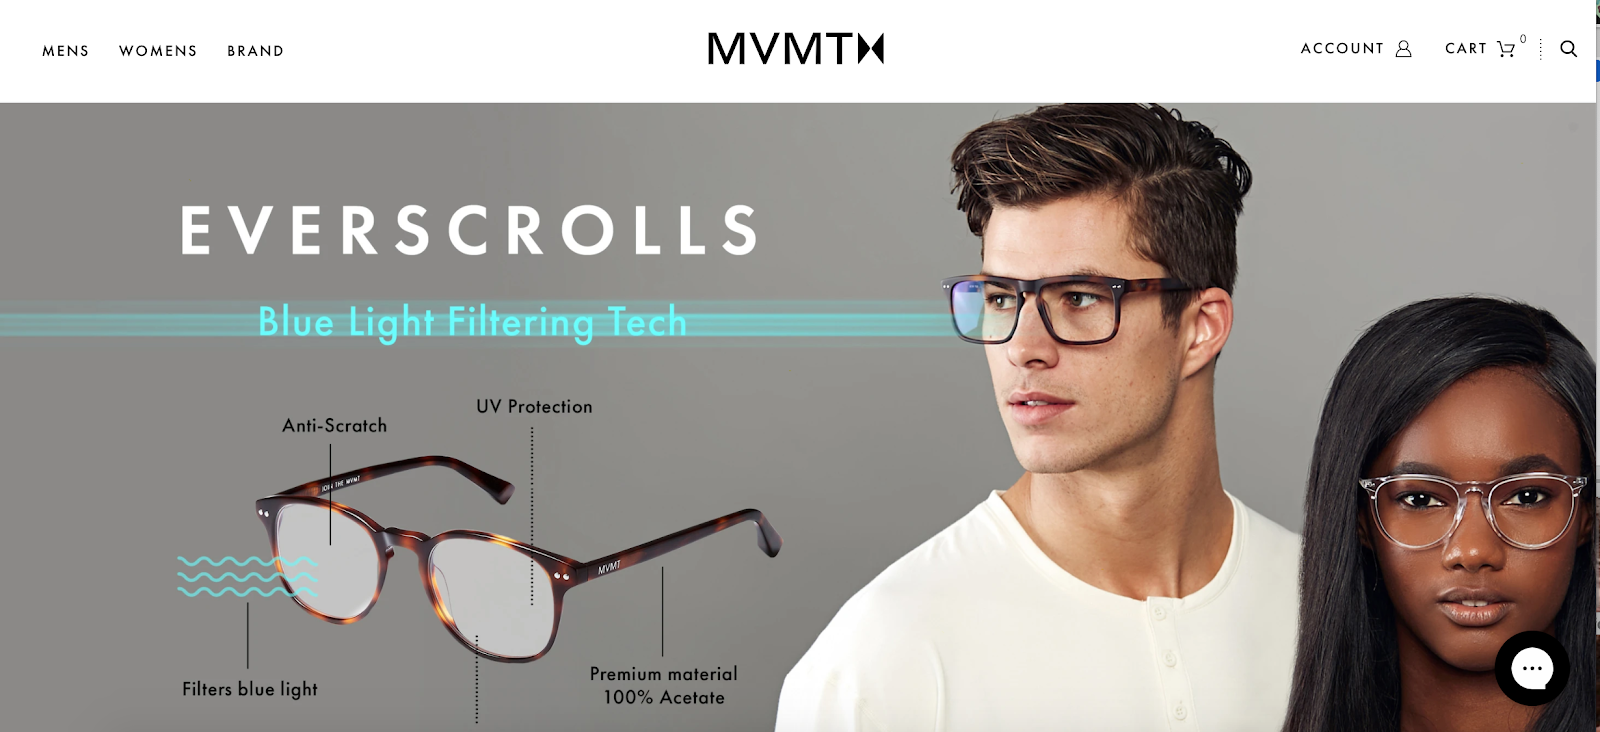 MVMT homepage with two people in glasses in the background